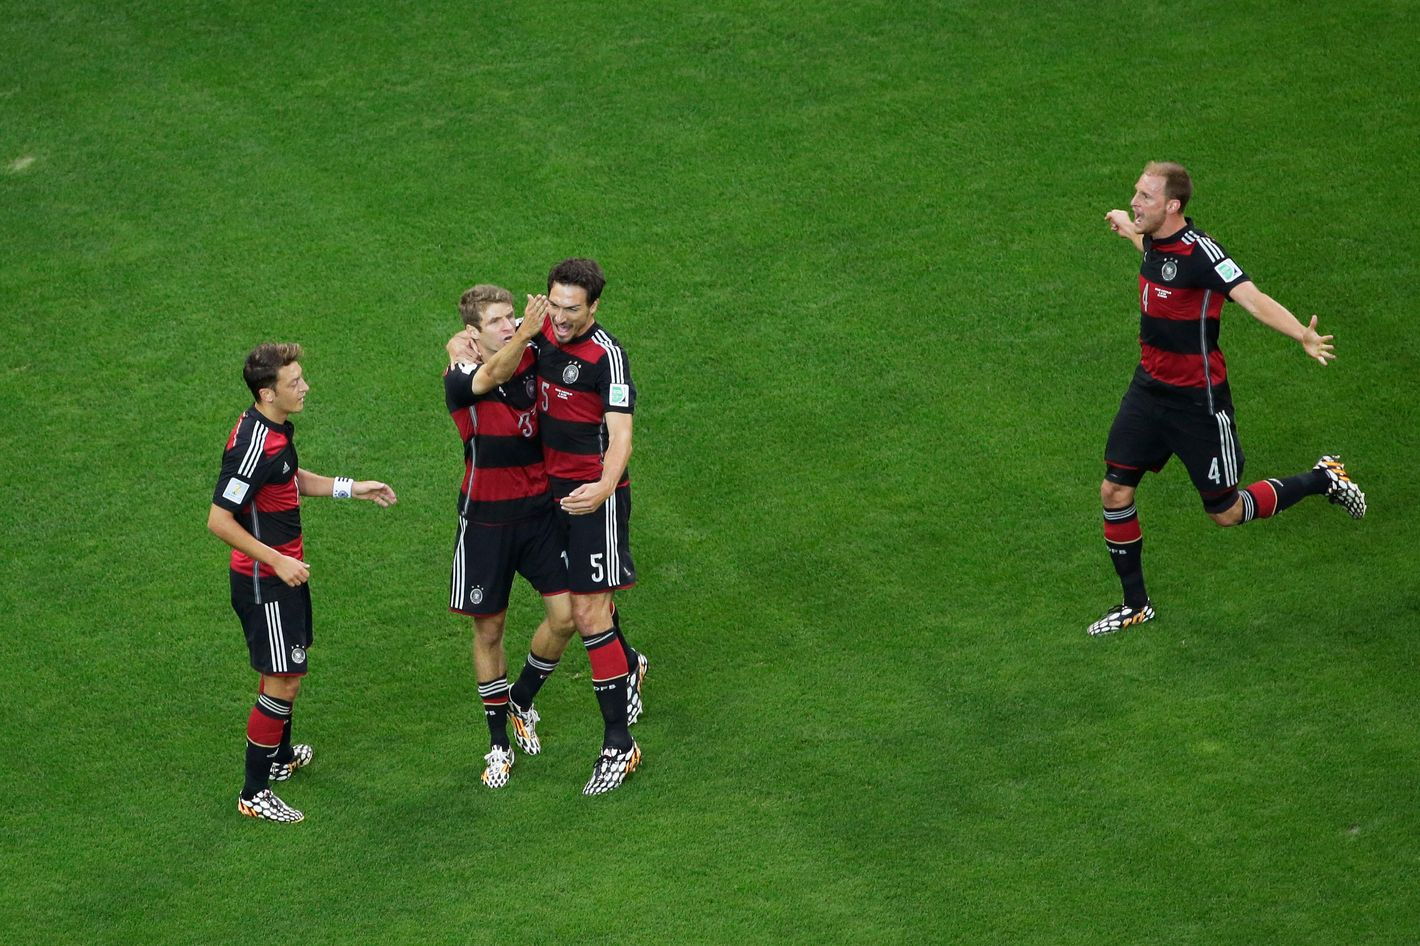 BELO HORIZONTE, BRAZIL - JULY 08:  Thomas Mueller of Germany celebrates scoring his team's first goal with Mats Hummels, Mesut Oezil (L) and Benedikt Hoewedes (R) during the 2014 FIFA World Cup Brazil Semi Final match between Brazil and Germany at Estadio Mineirao on July 8, 2014 in Belo Horizonte, Brazil.  (Photo by Felipe Dana - Pool/Getty Images)